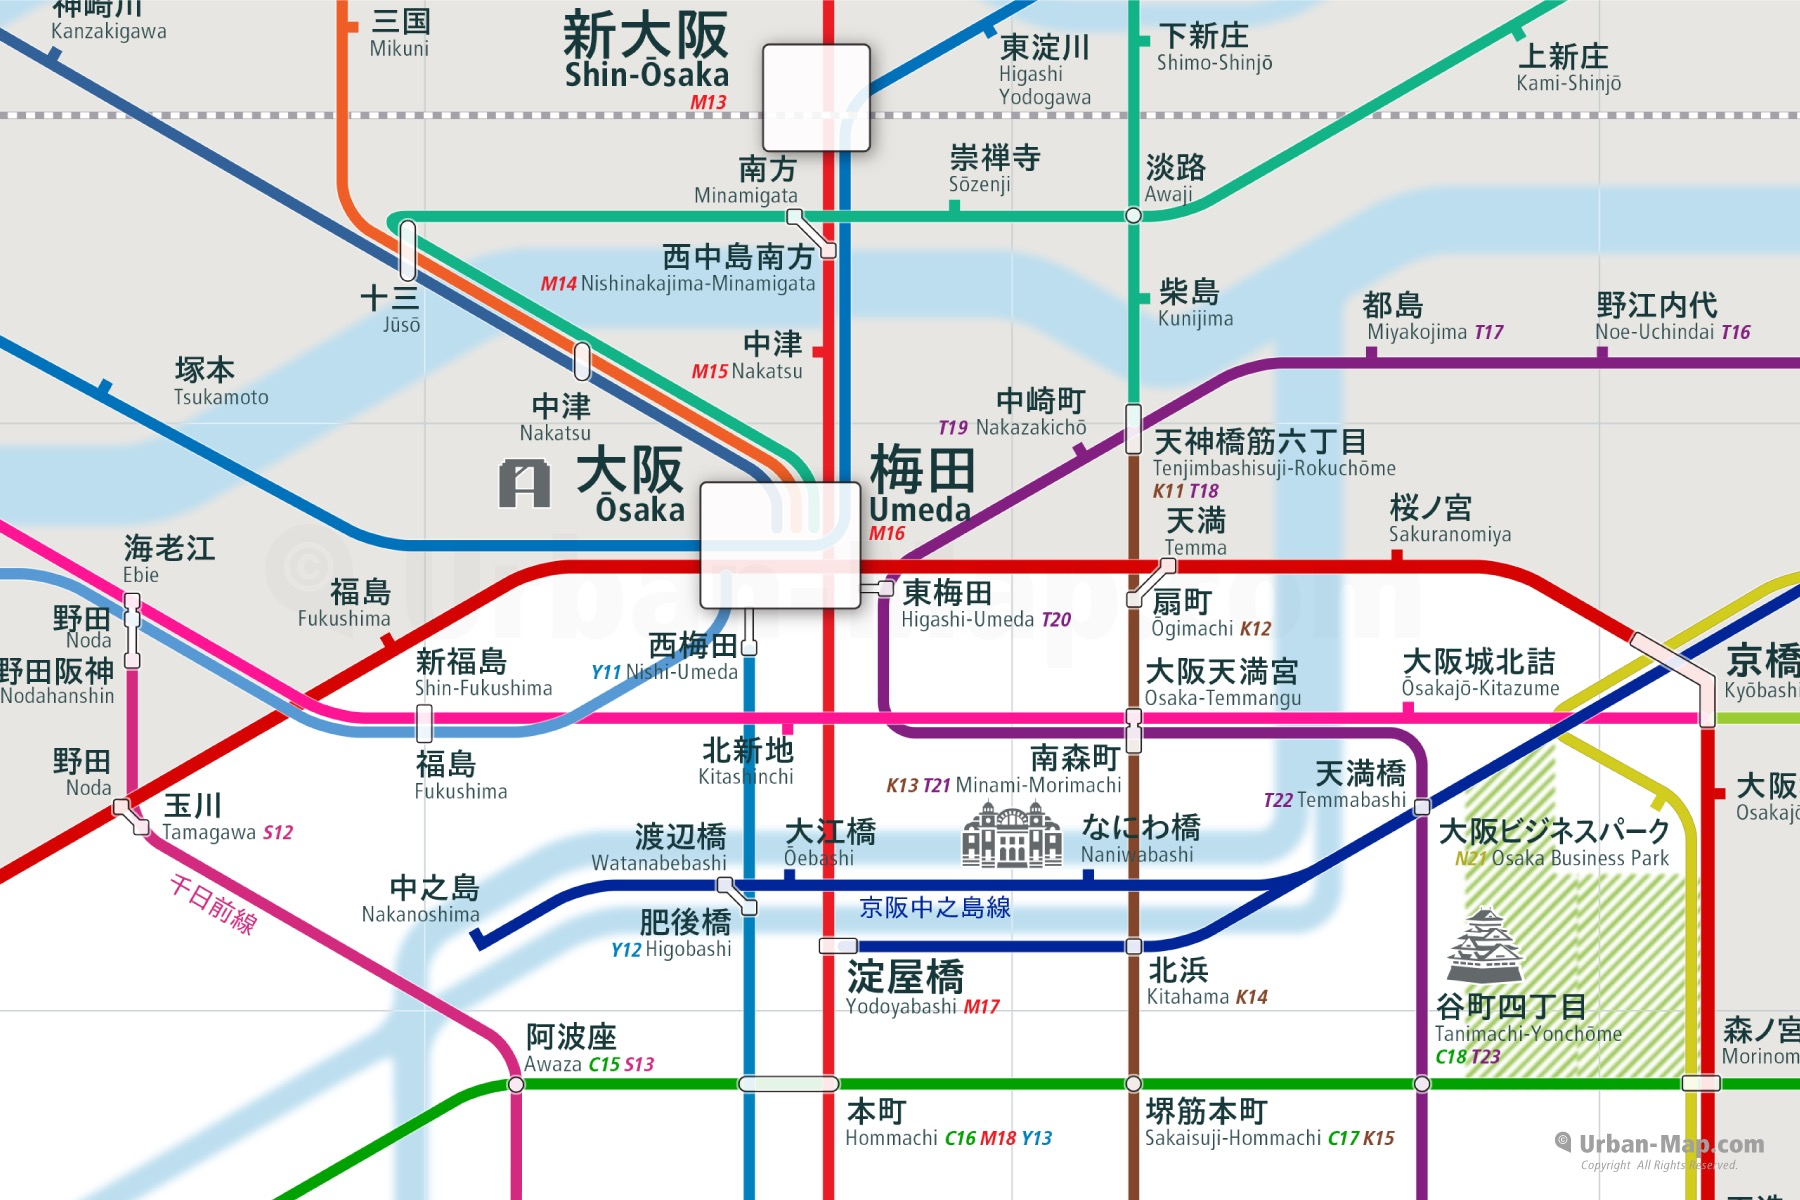 Osaka City Rail Map Japanese shows the train and public transportation routes of Subway, JR West, Hankyu, Hanshin, Keihan - Close-Up